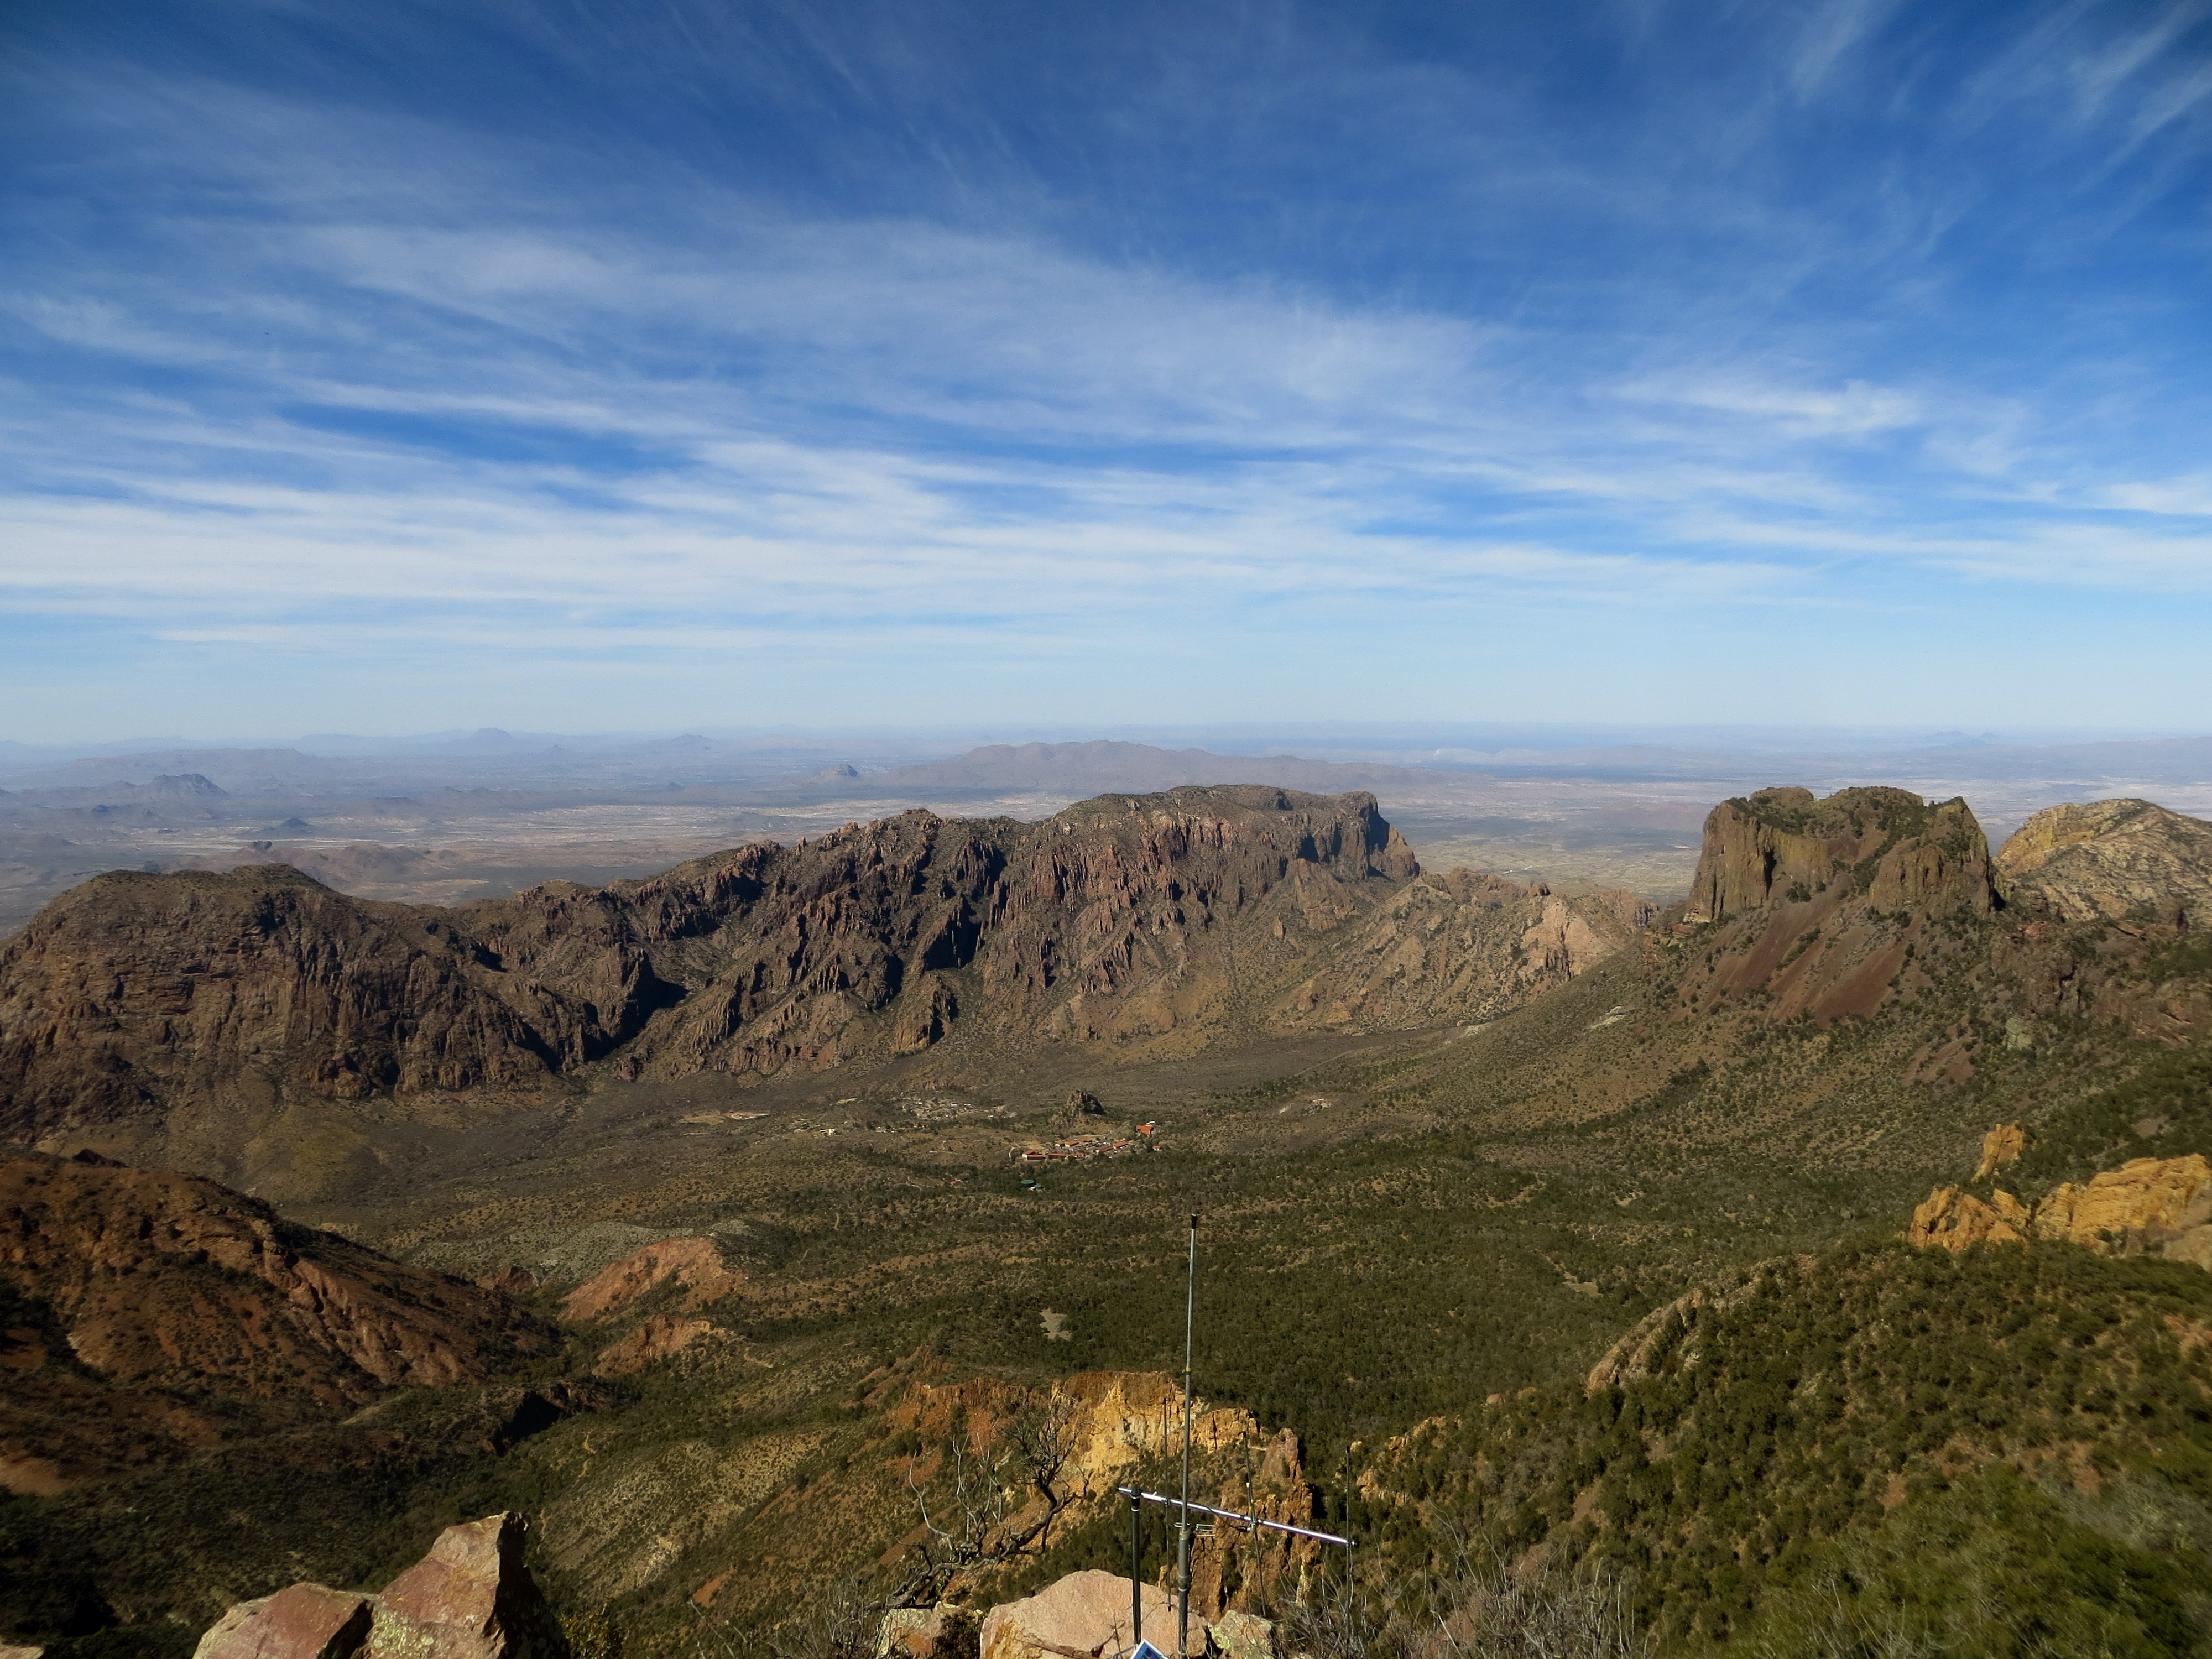 big bend national park cougars personals Texas, usa big bend national park in texas is the largest protected area of the chihuahuan desert covering 800,000 acres and containing more than 1,200 species of plants, more than 450.